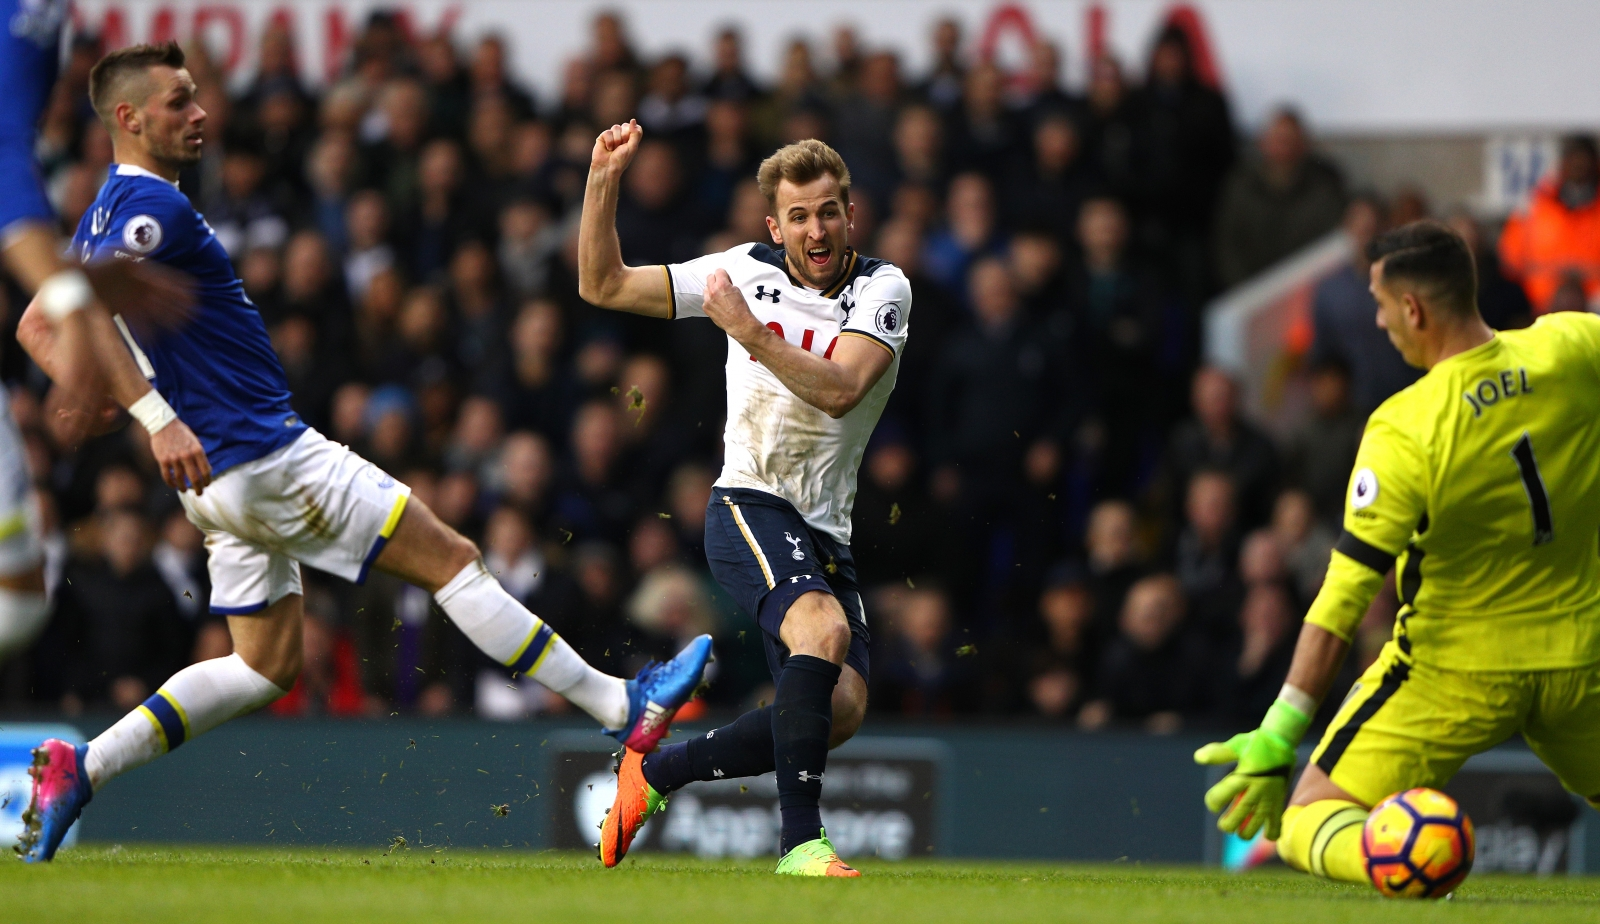 A Battle of Wits as Tottenham and Everton are Similar